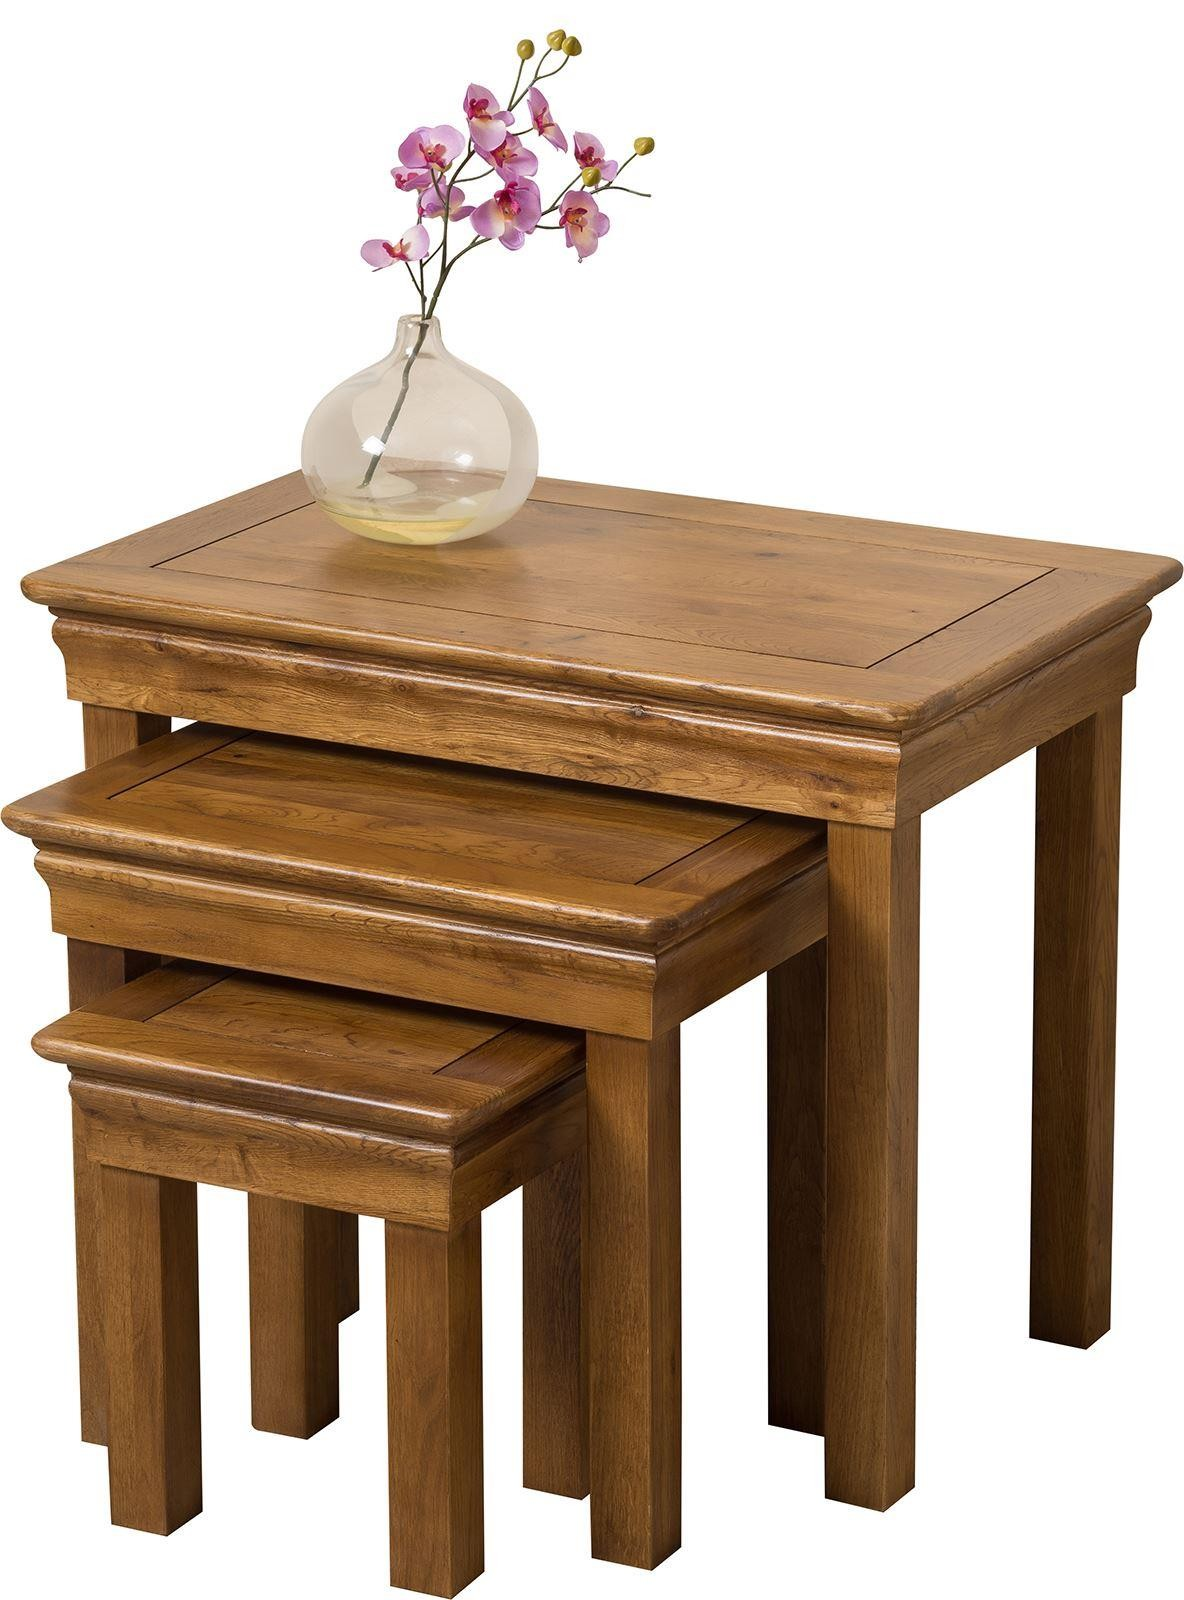 French Chateau Rustic Solid Oak Nest of Tables [3 Tables]